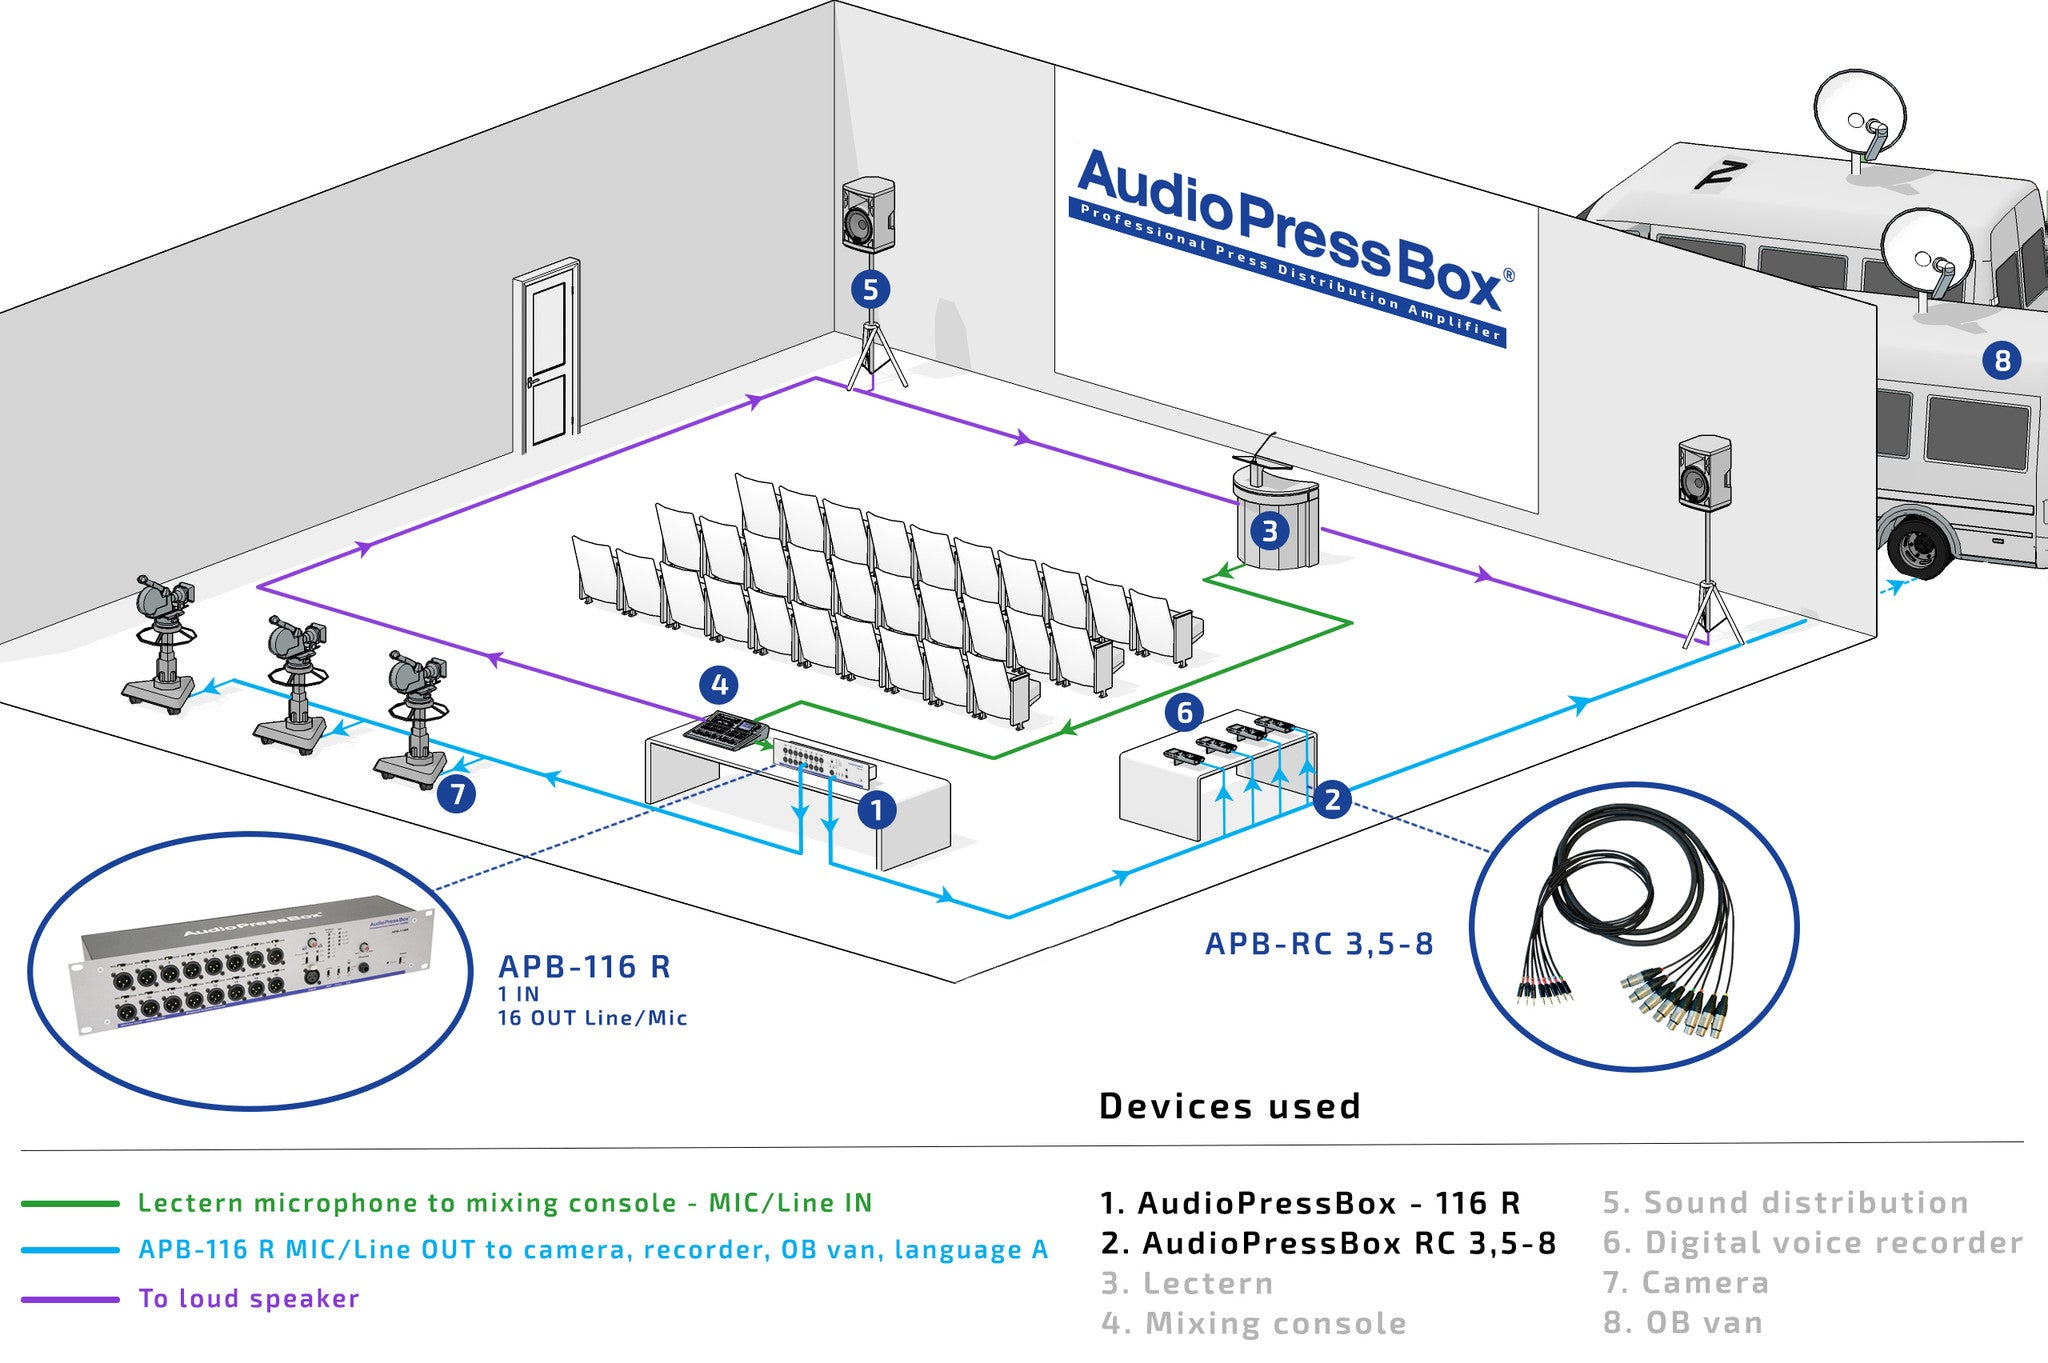 AudioPressBox, Mult Box, PressBox, Mult Box, Press Patch Box, Pressesplitter, APB-116 R